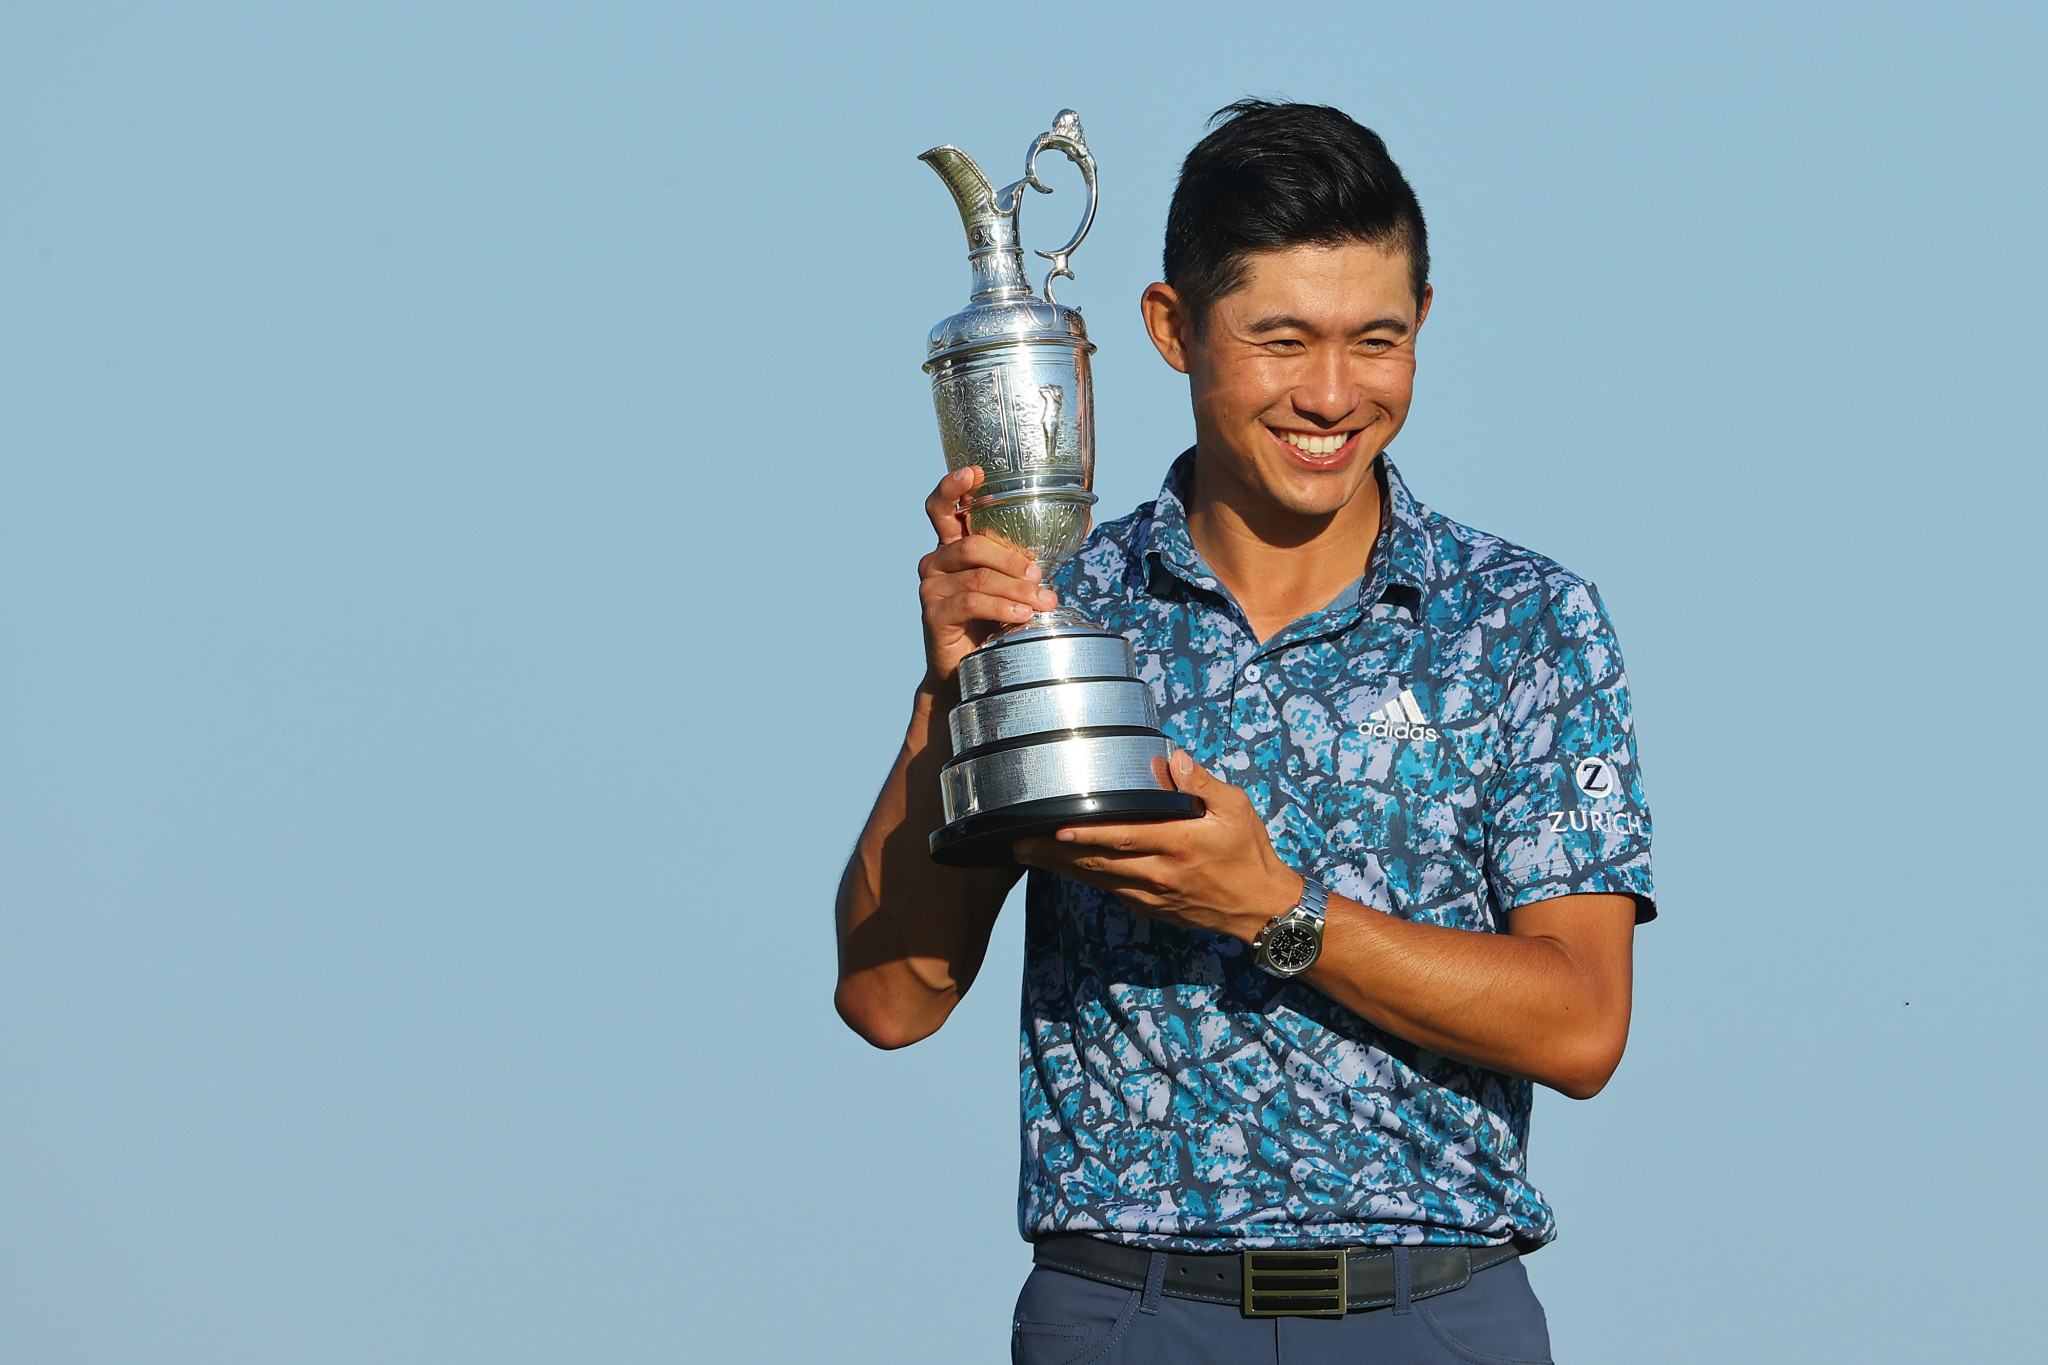 Record-breaking Morikawa fends off Spieth to win Open on debut